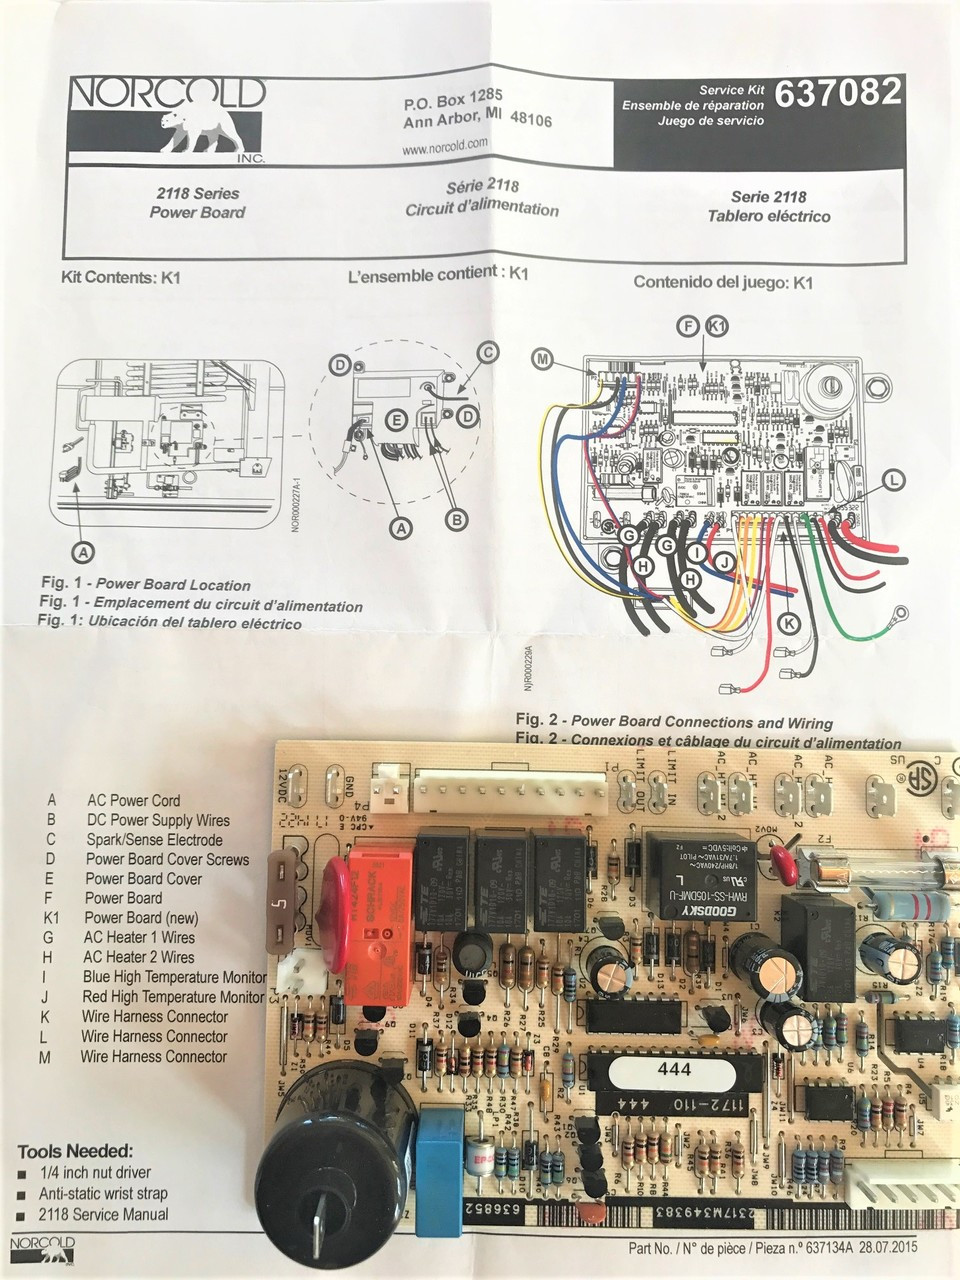 IMG_0059_2__66296.1504279223.1280.1280?c=2 norcold model n621 rv refrigerator wiring diagram norcold 1200 norcold power board wiring diagram at creativeand.co